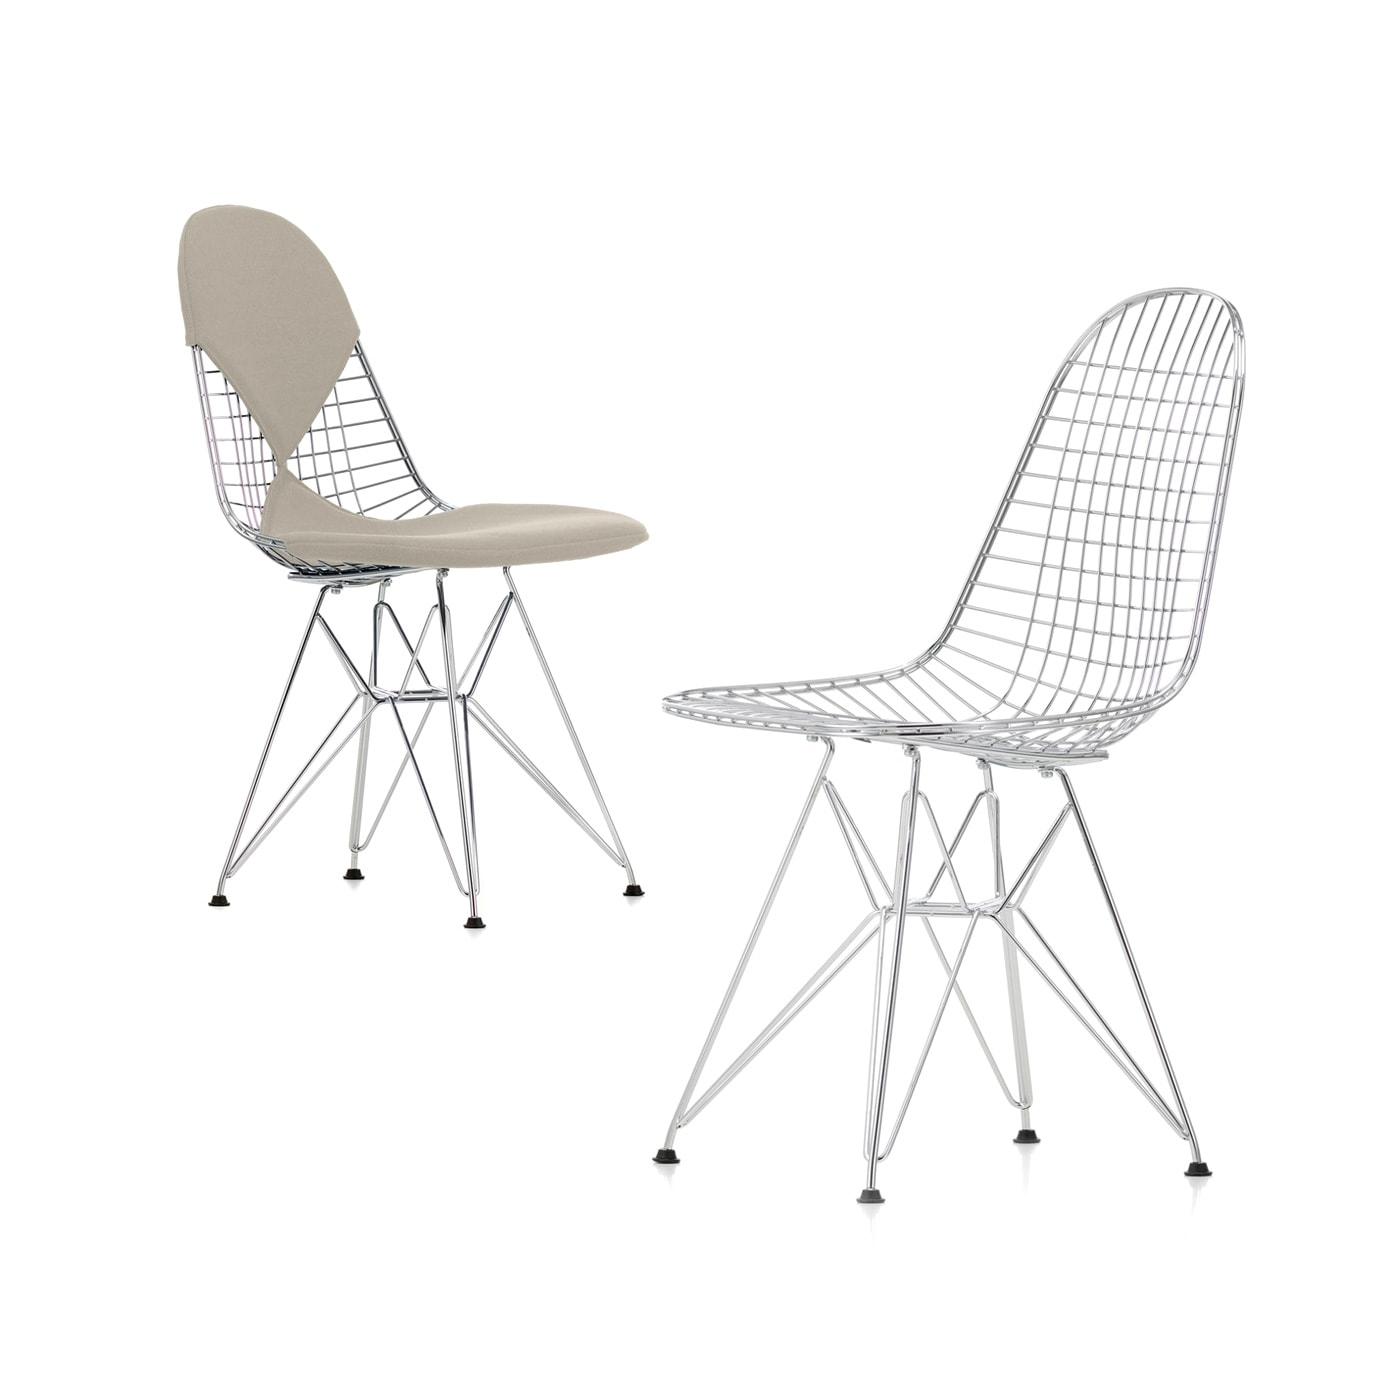 VITRA WIRE chair DKR seduta